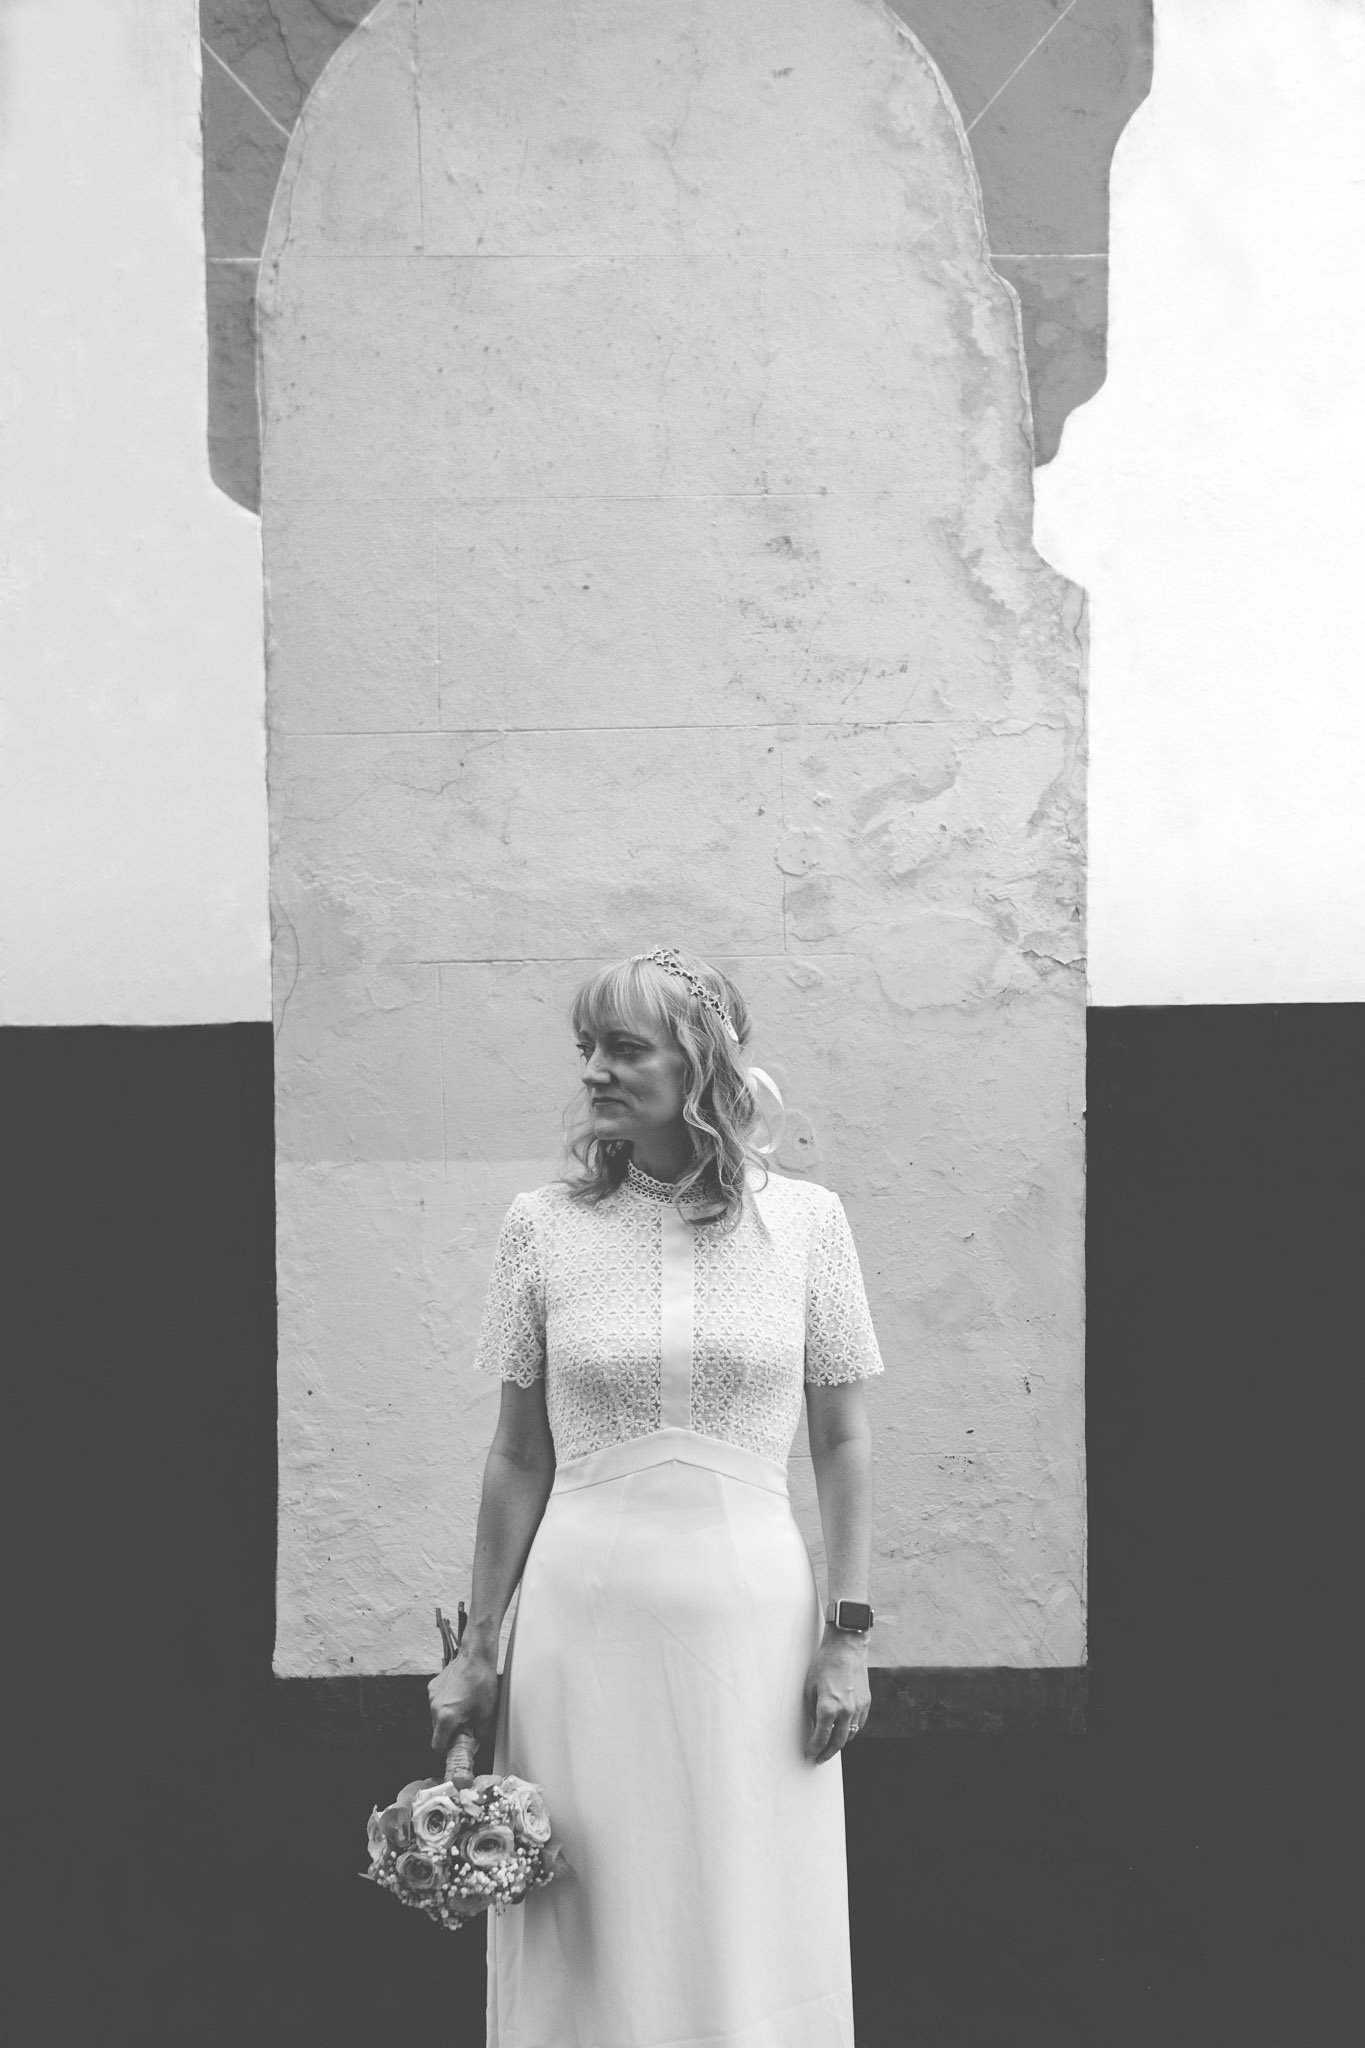 Creative portrait of a bride in front of a wall in London. Photography by thatthingyoupluck.